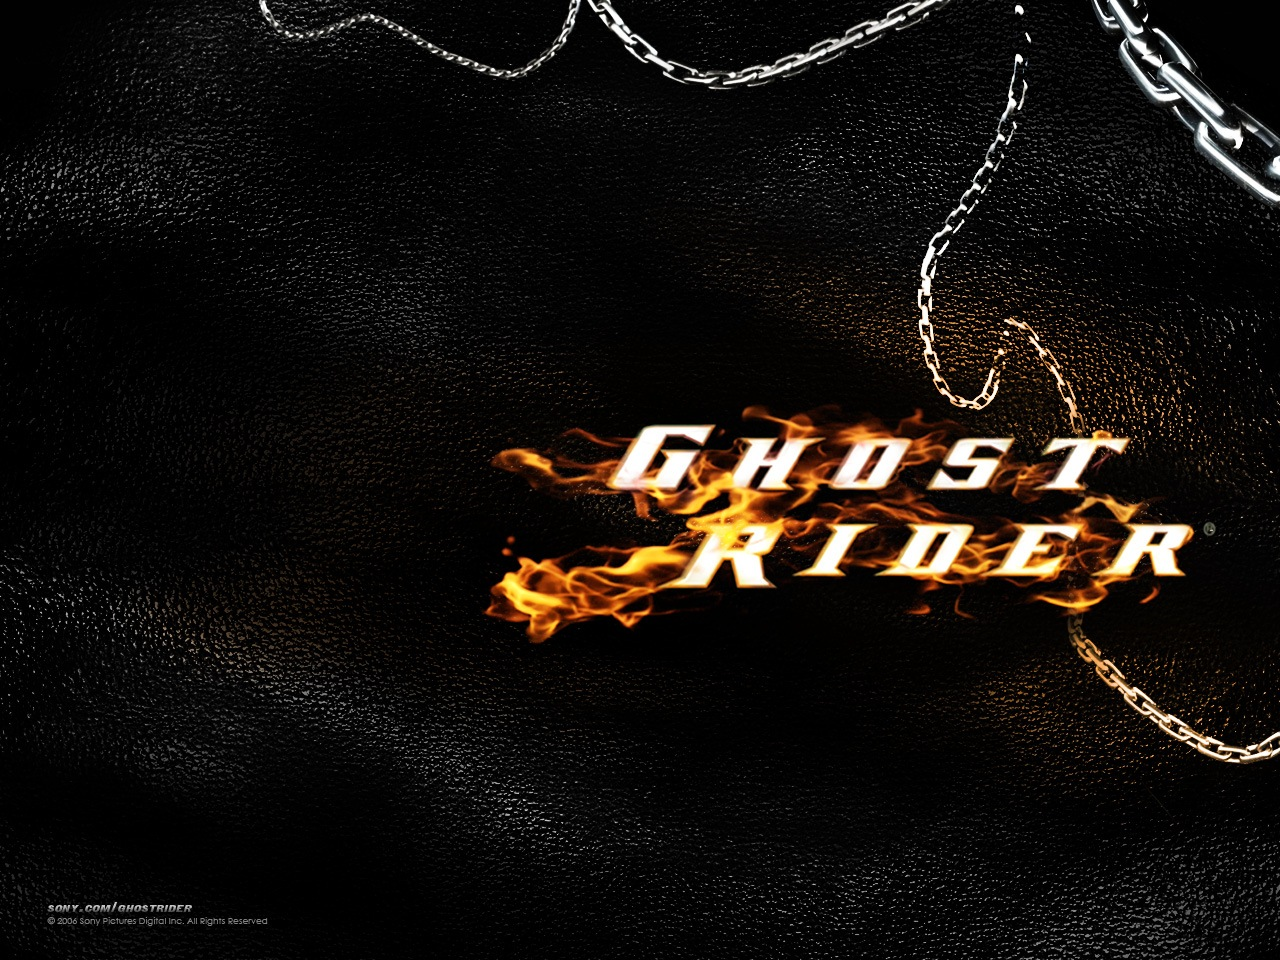 the ghost rider images ghost rider hd wallpaper and